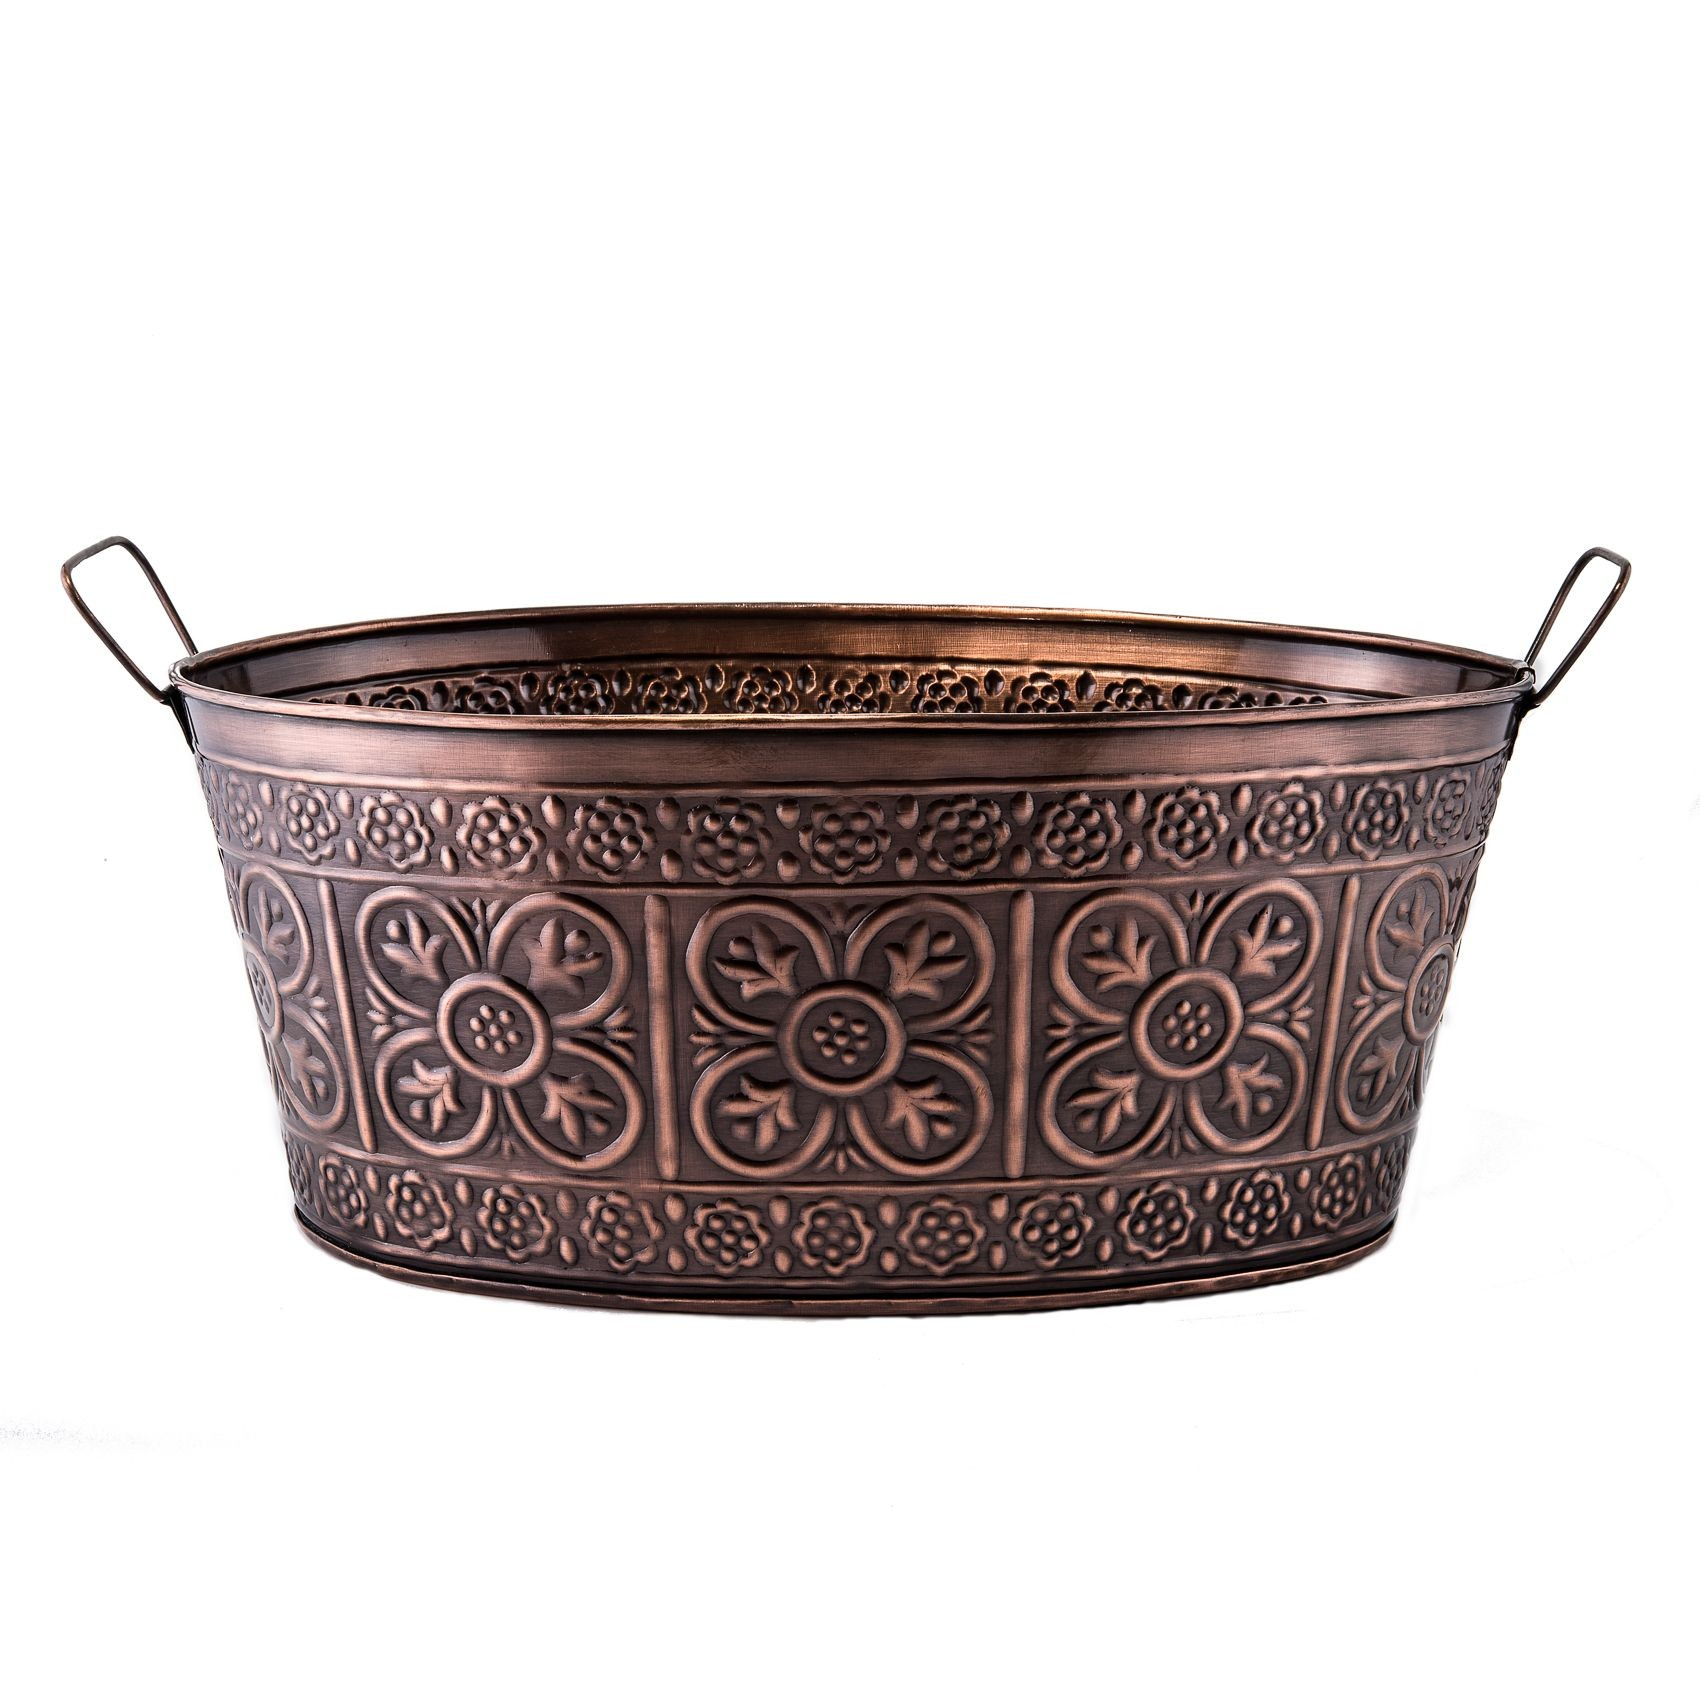 Old Dutch International 634 Antique Copper Party Tub, 3 1/2 Gallon